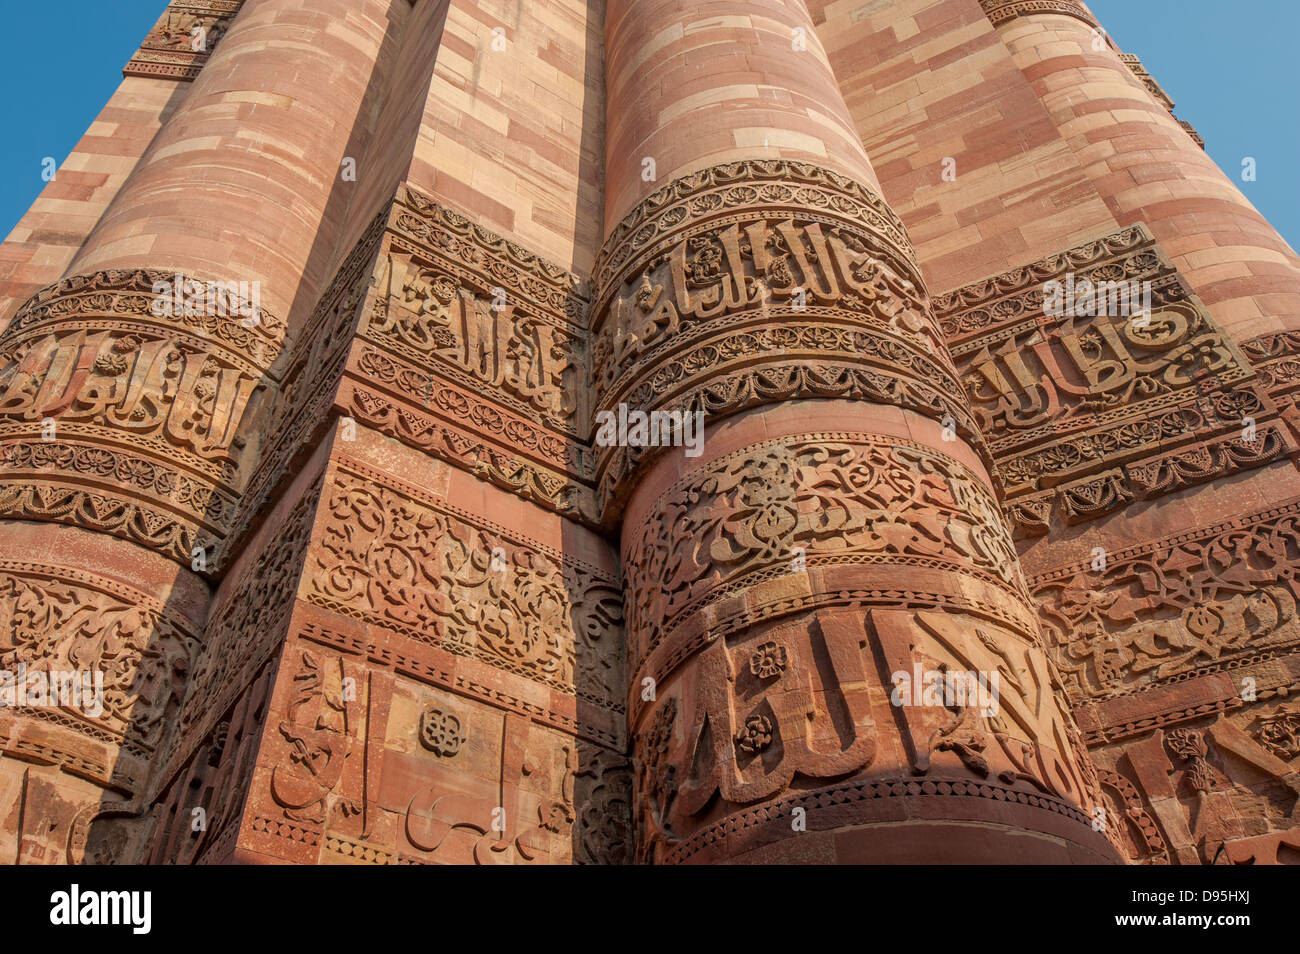 Qutub Minar tower, Delhi, India - Stock Image